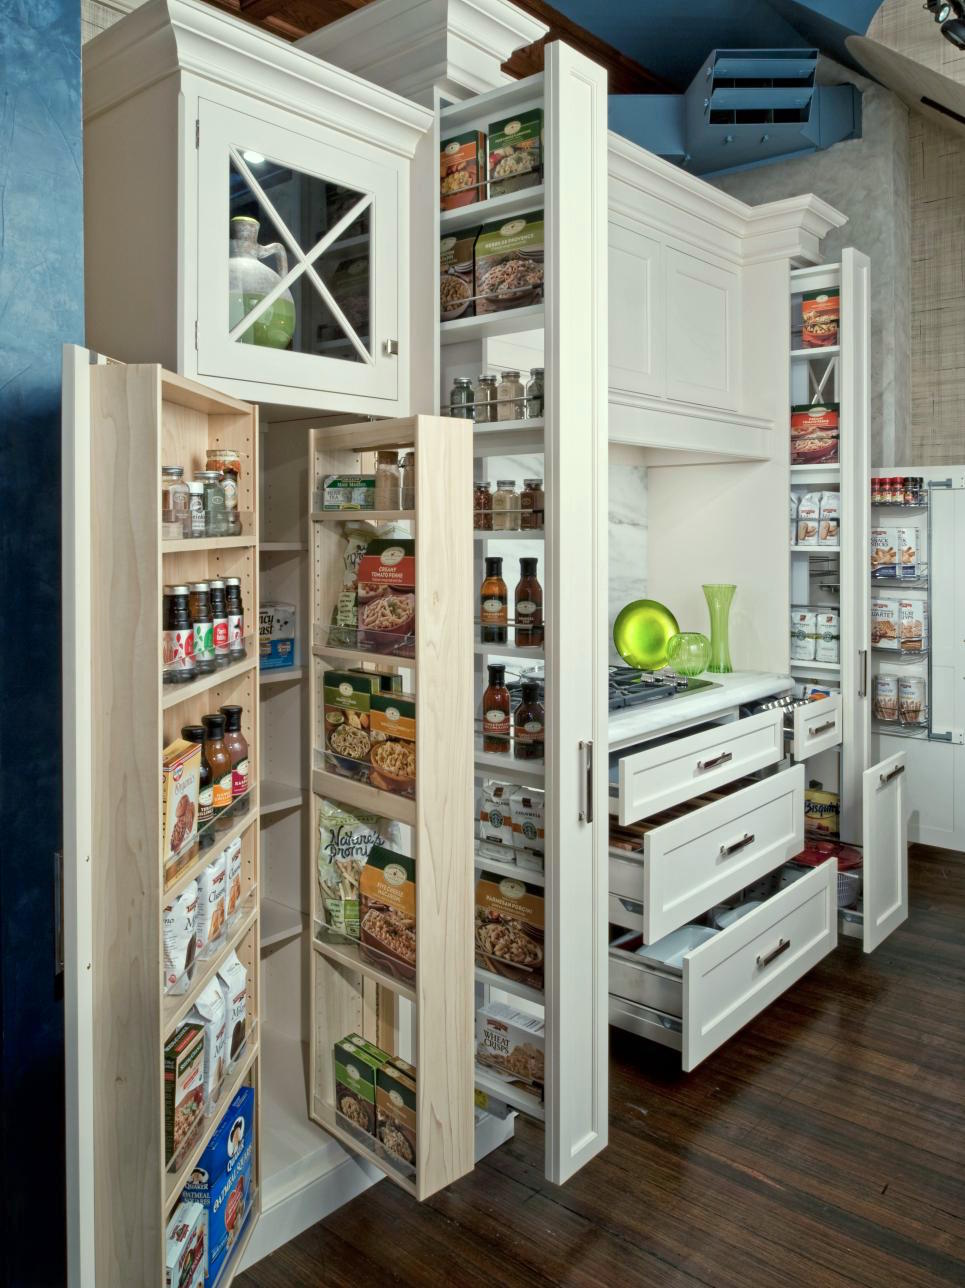 stephen-rossi-photo-Kitchen-Pantry-Cabinets_s3x4.jpg.rend.hgtvcom.966.1288